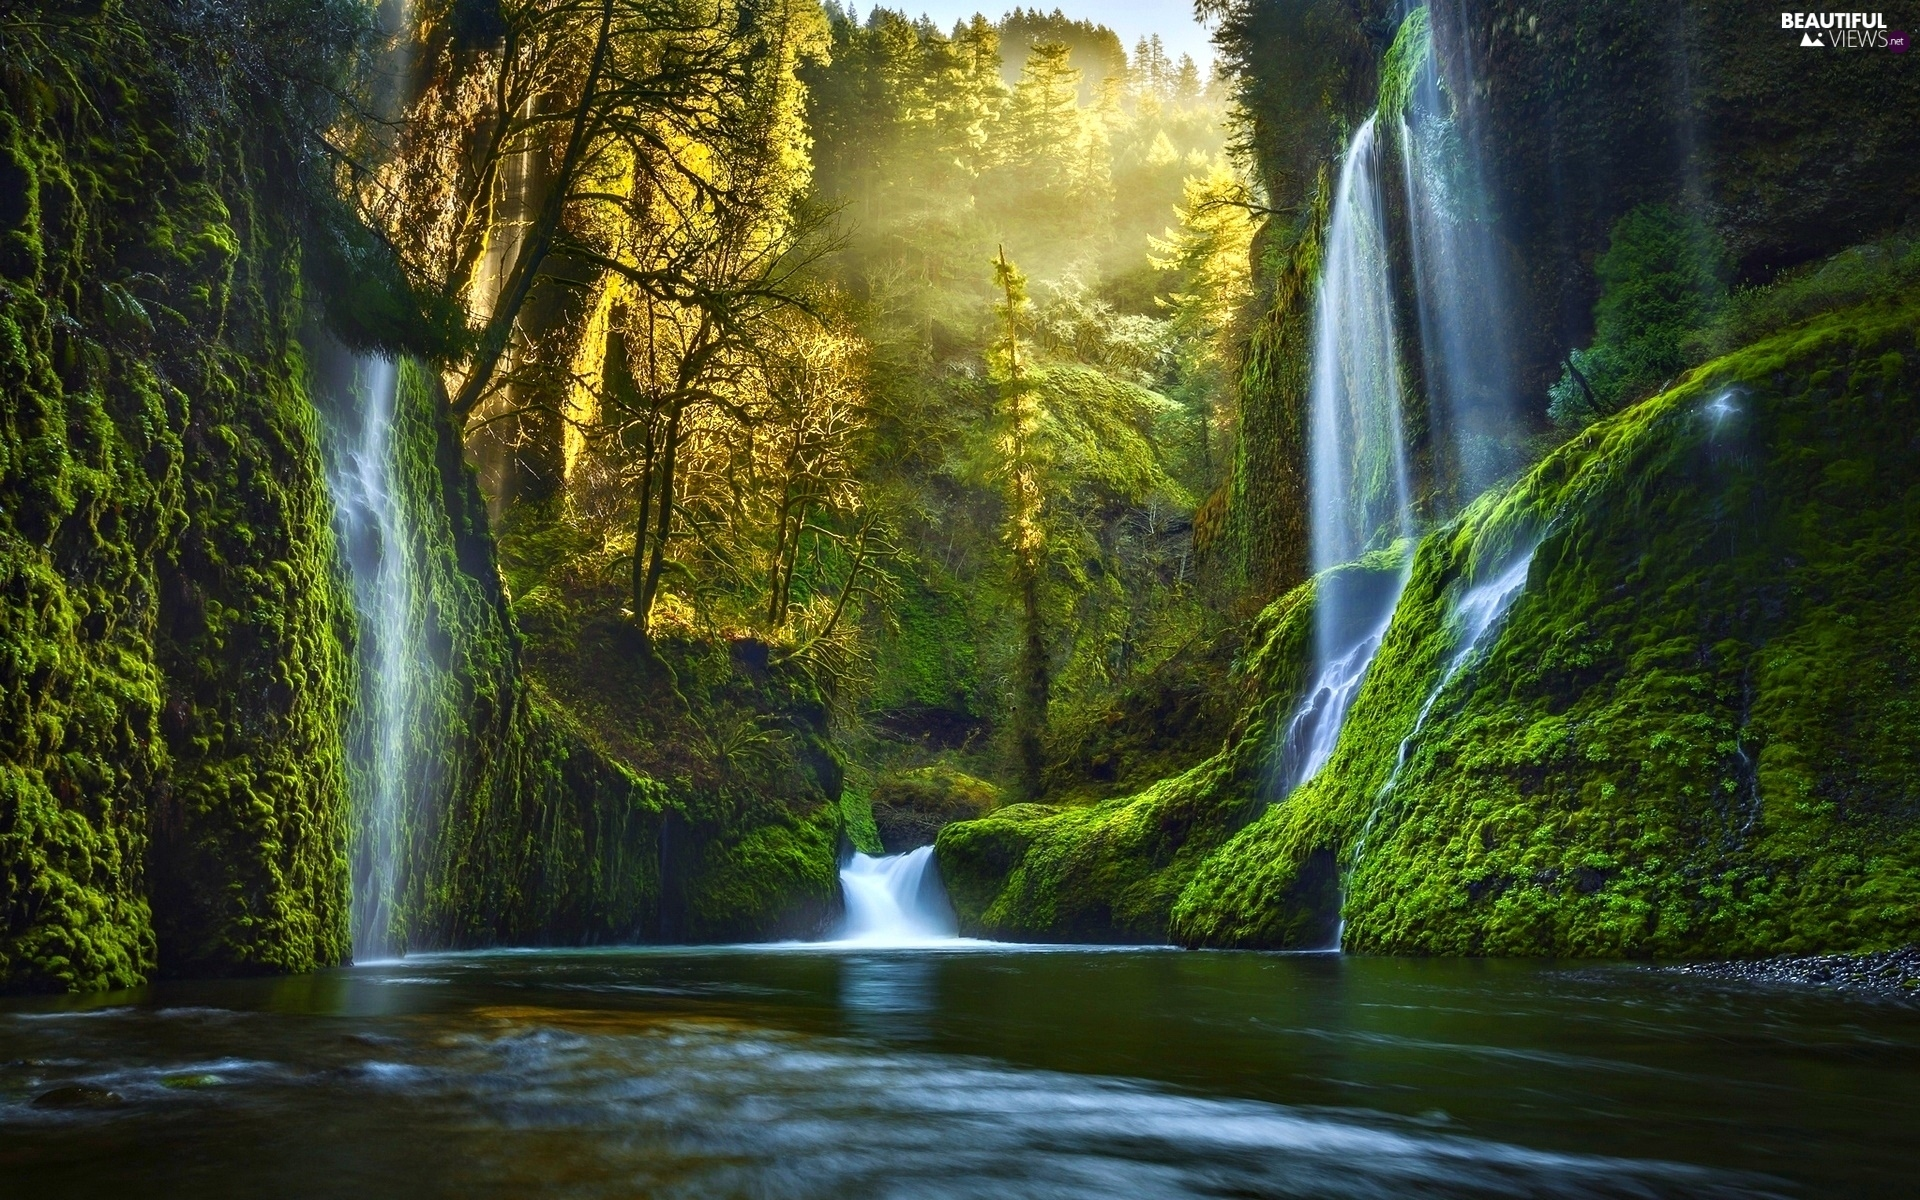 http://www.beautiful-views.net/views/breaking-light-waterfall-river-sky-through.jpg